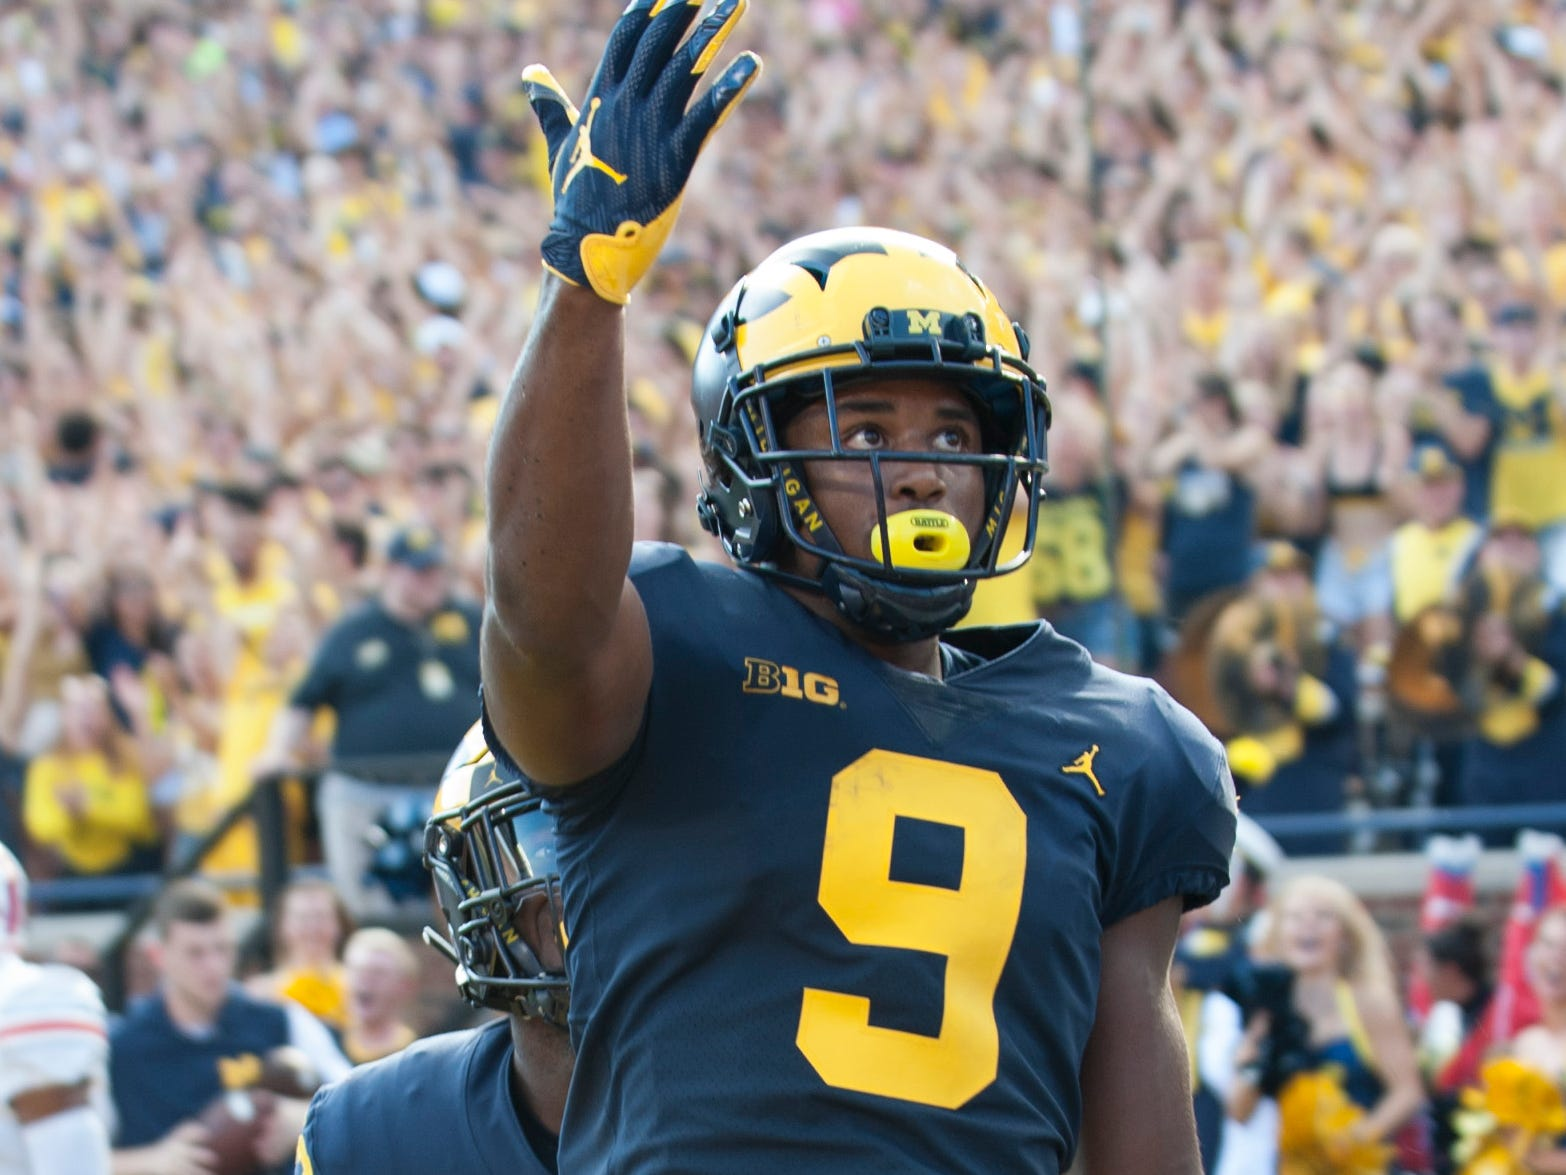 Michigan wide receiver Donovan Peoples-Jones acknowledges the Michigan crowd after scoring on a 35-yard touchdown pass from quarterback Shea Patterson in the second quarter.